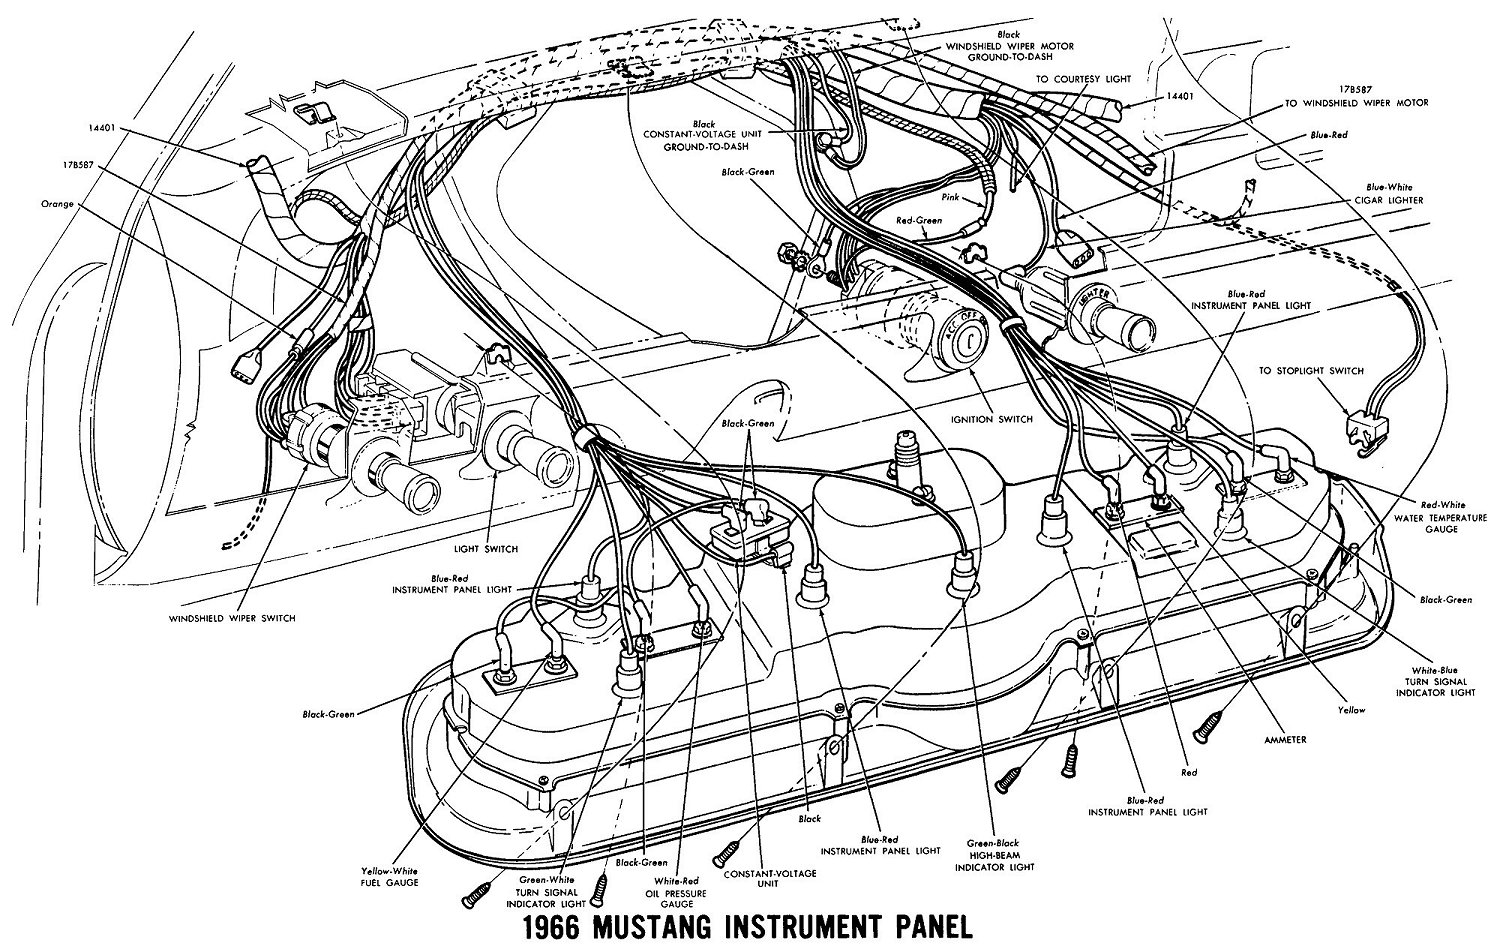 66instr 1966 mustang wiring diagrams average joe restoration 65 mustang dash wiring diagram at bayanpartner.co